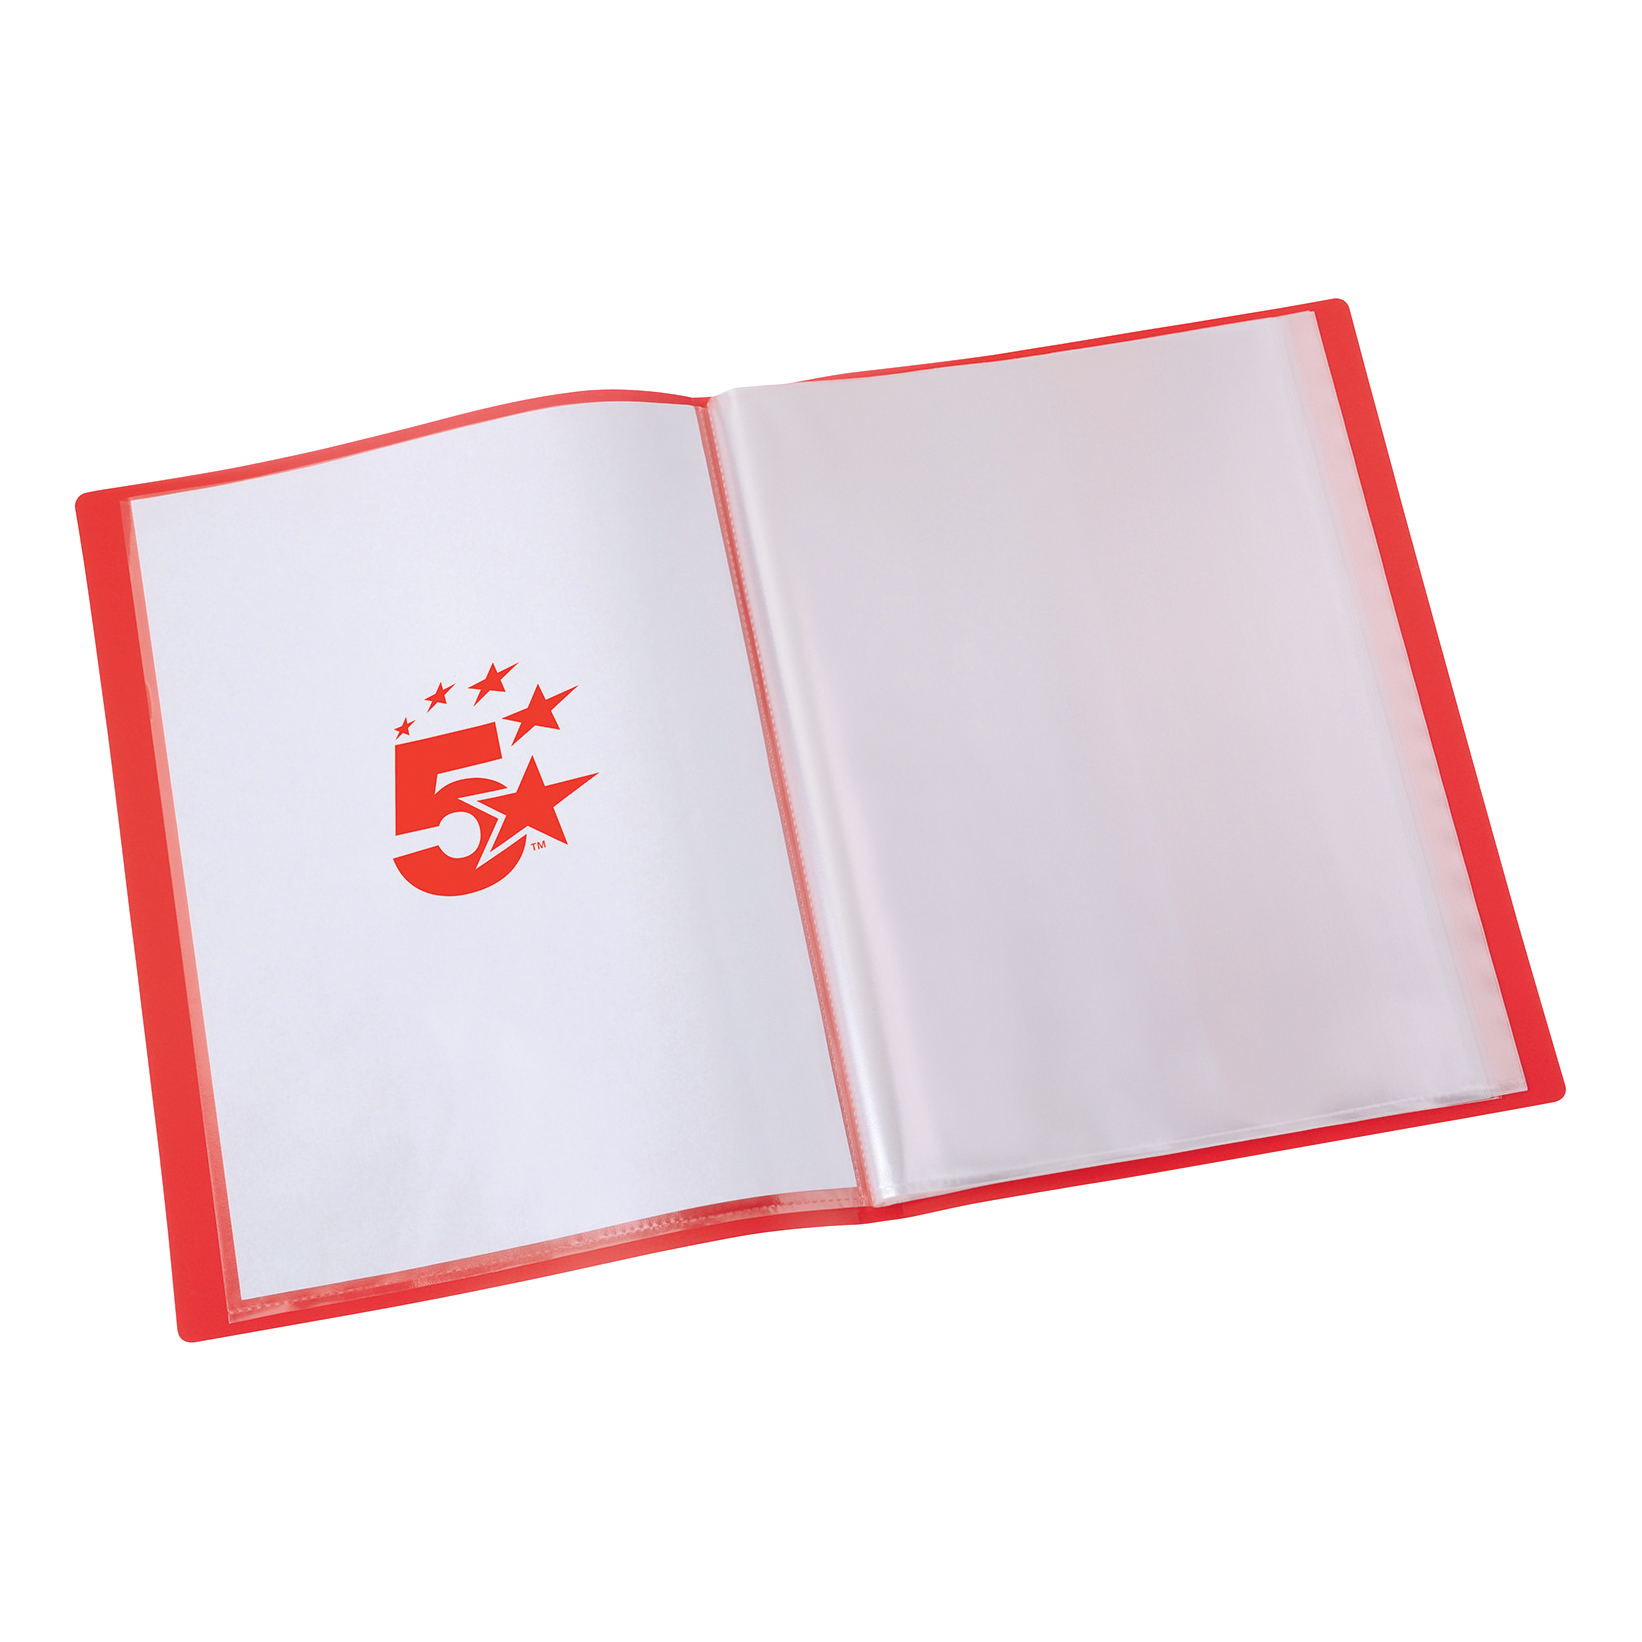 5 Star Office Display Book Soft Cover Lightweight Polypropylene 40 Pockets A4 Red